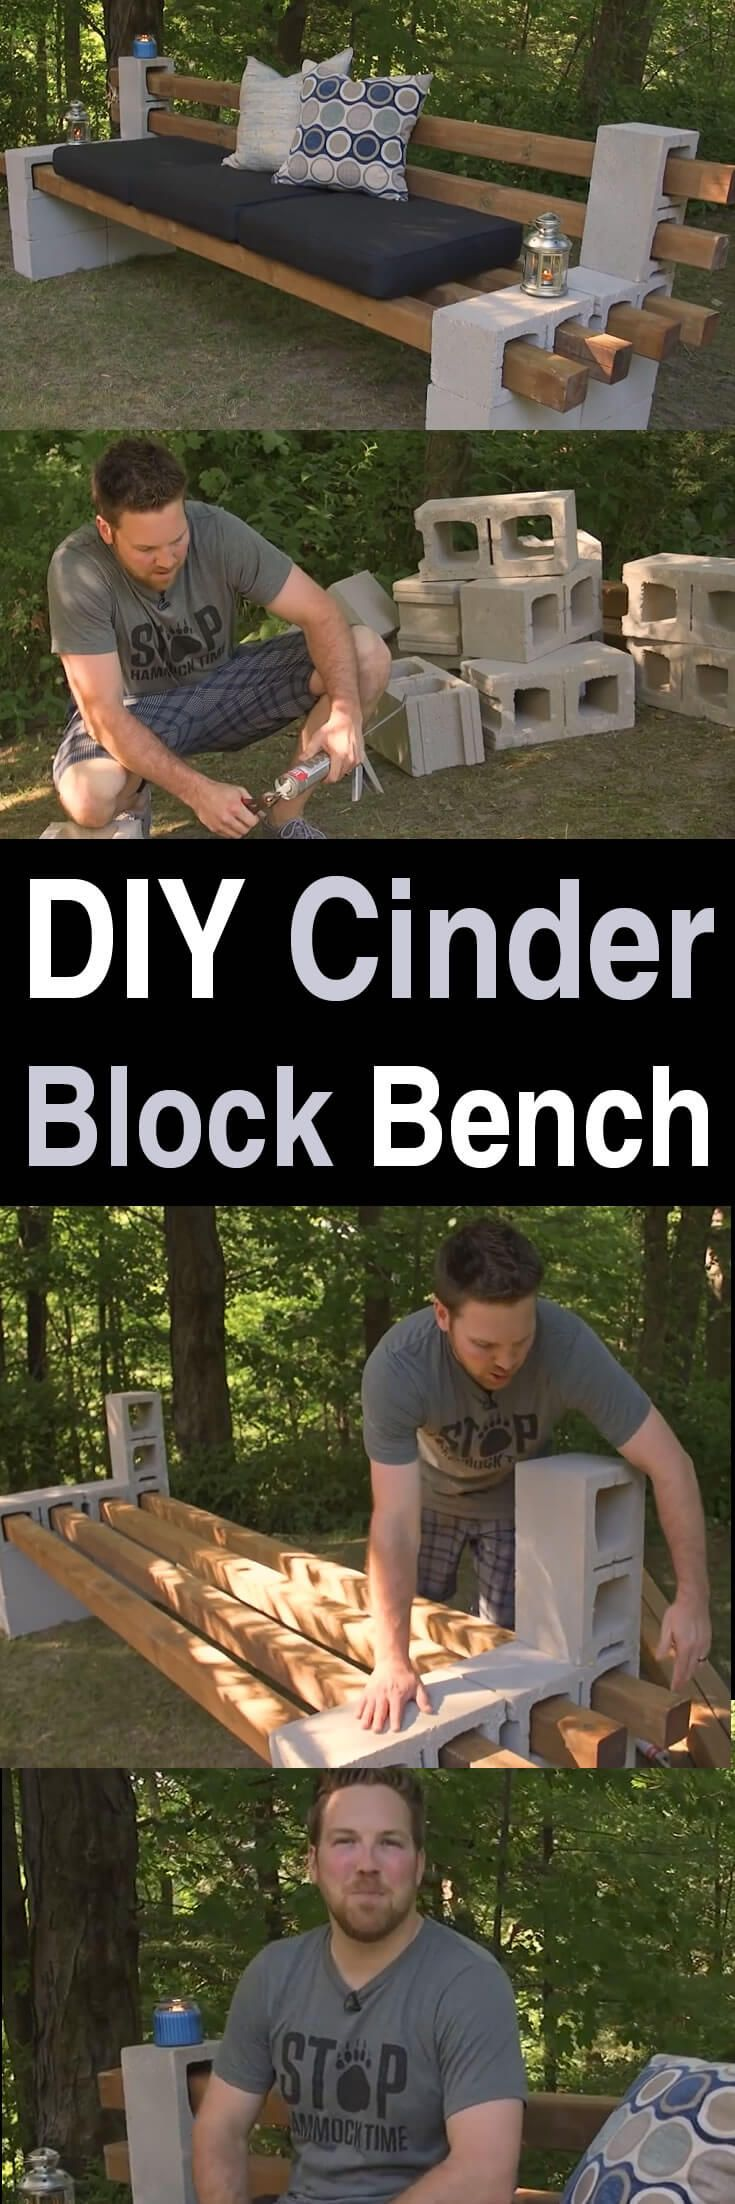 diy cinder block bench friends of the backyard pioneer preparedness homesteading pinterest. Black Bedroom Furniture Sets. Home Design Ideas